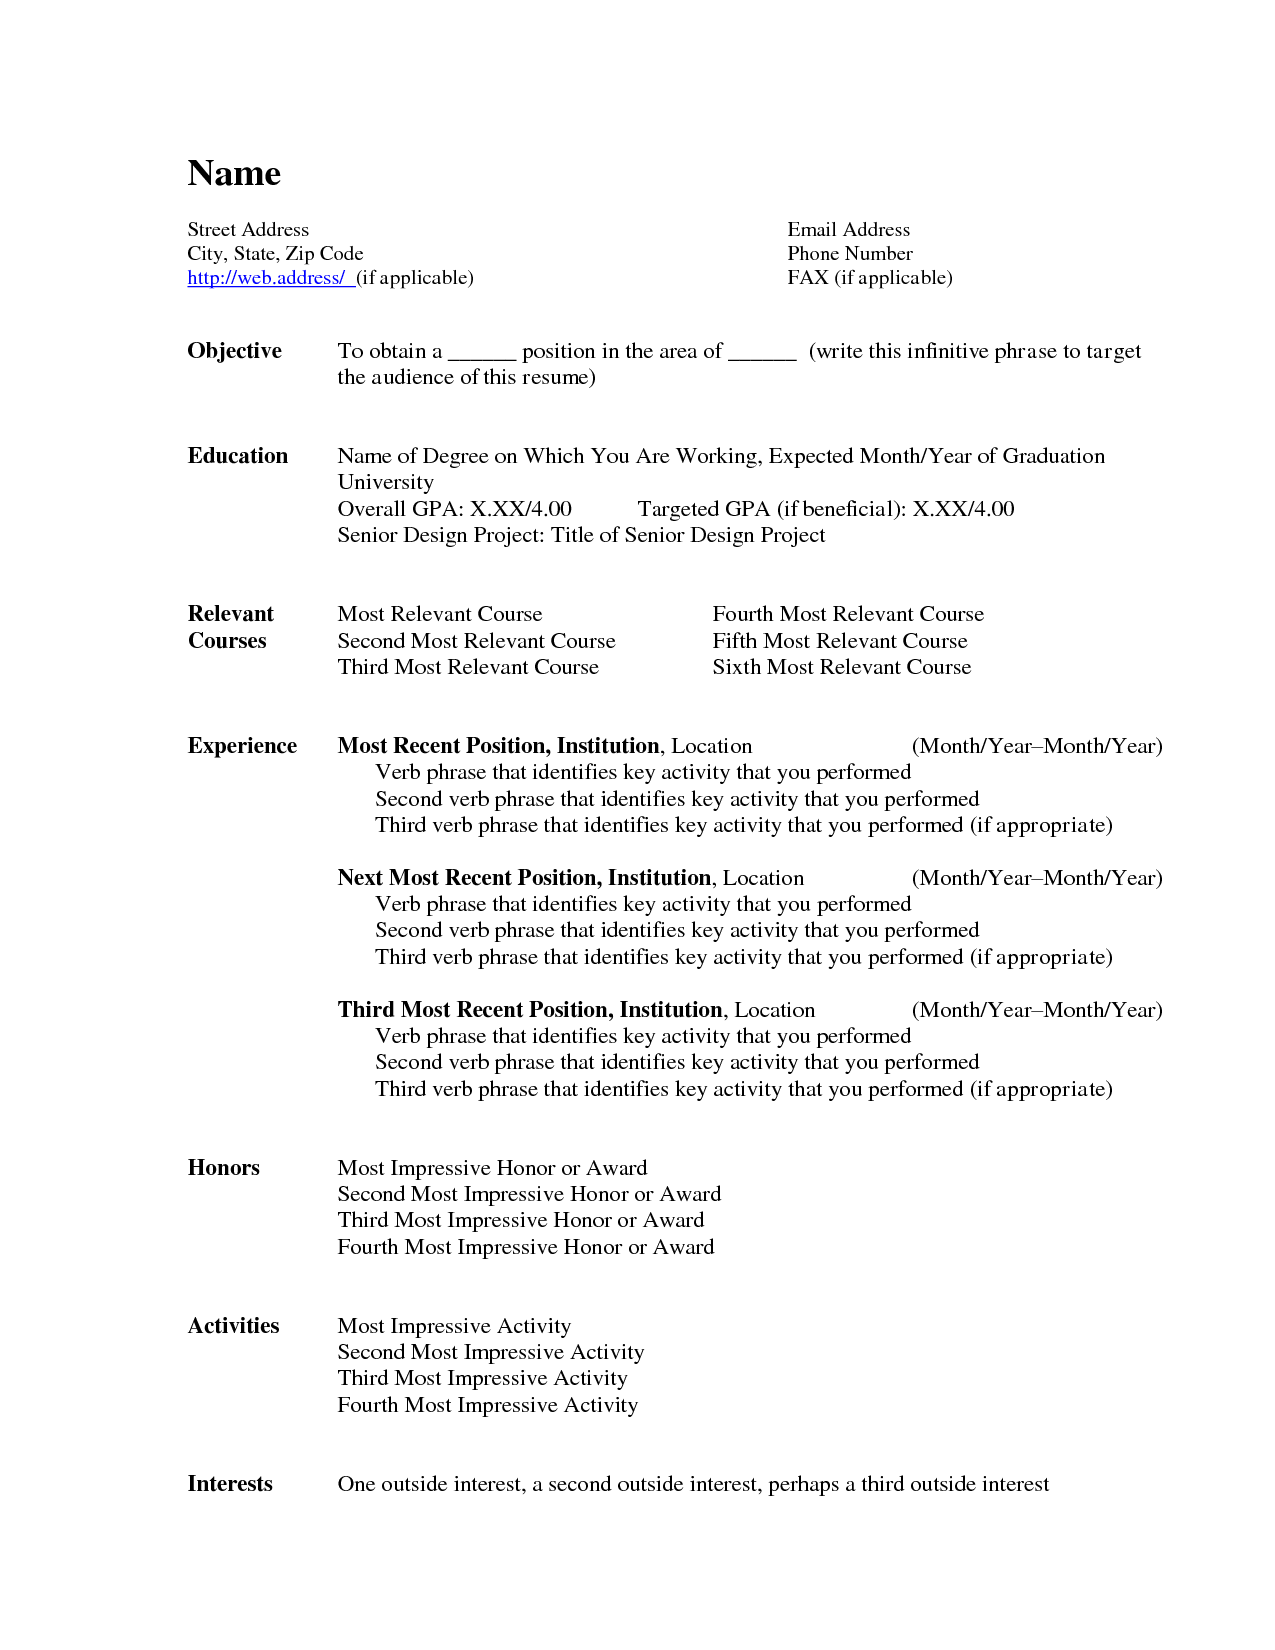 microsoft word resume template resume builder resume resume httpwwwjobresume